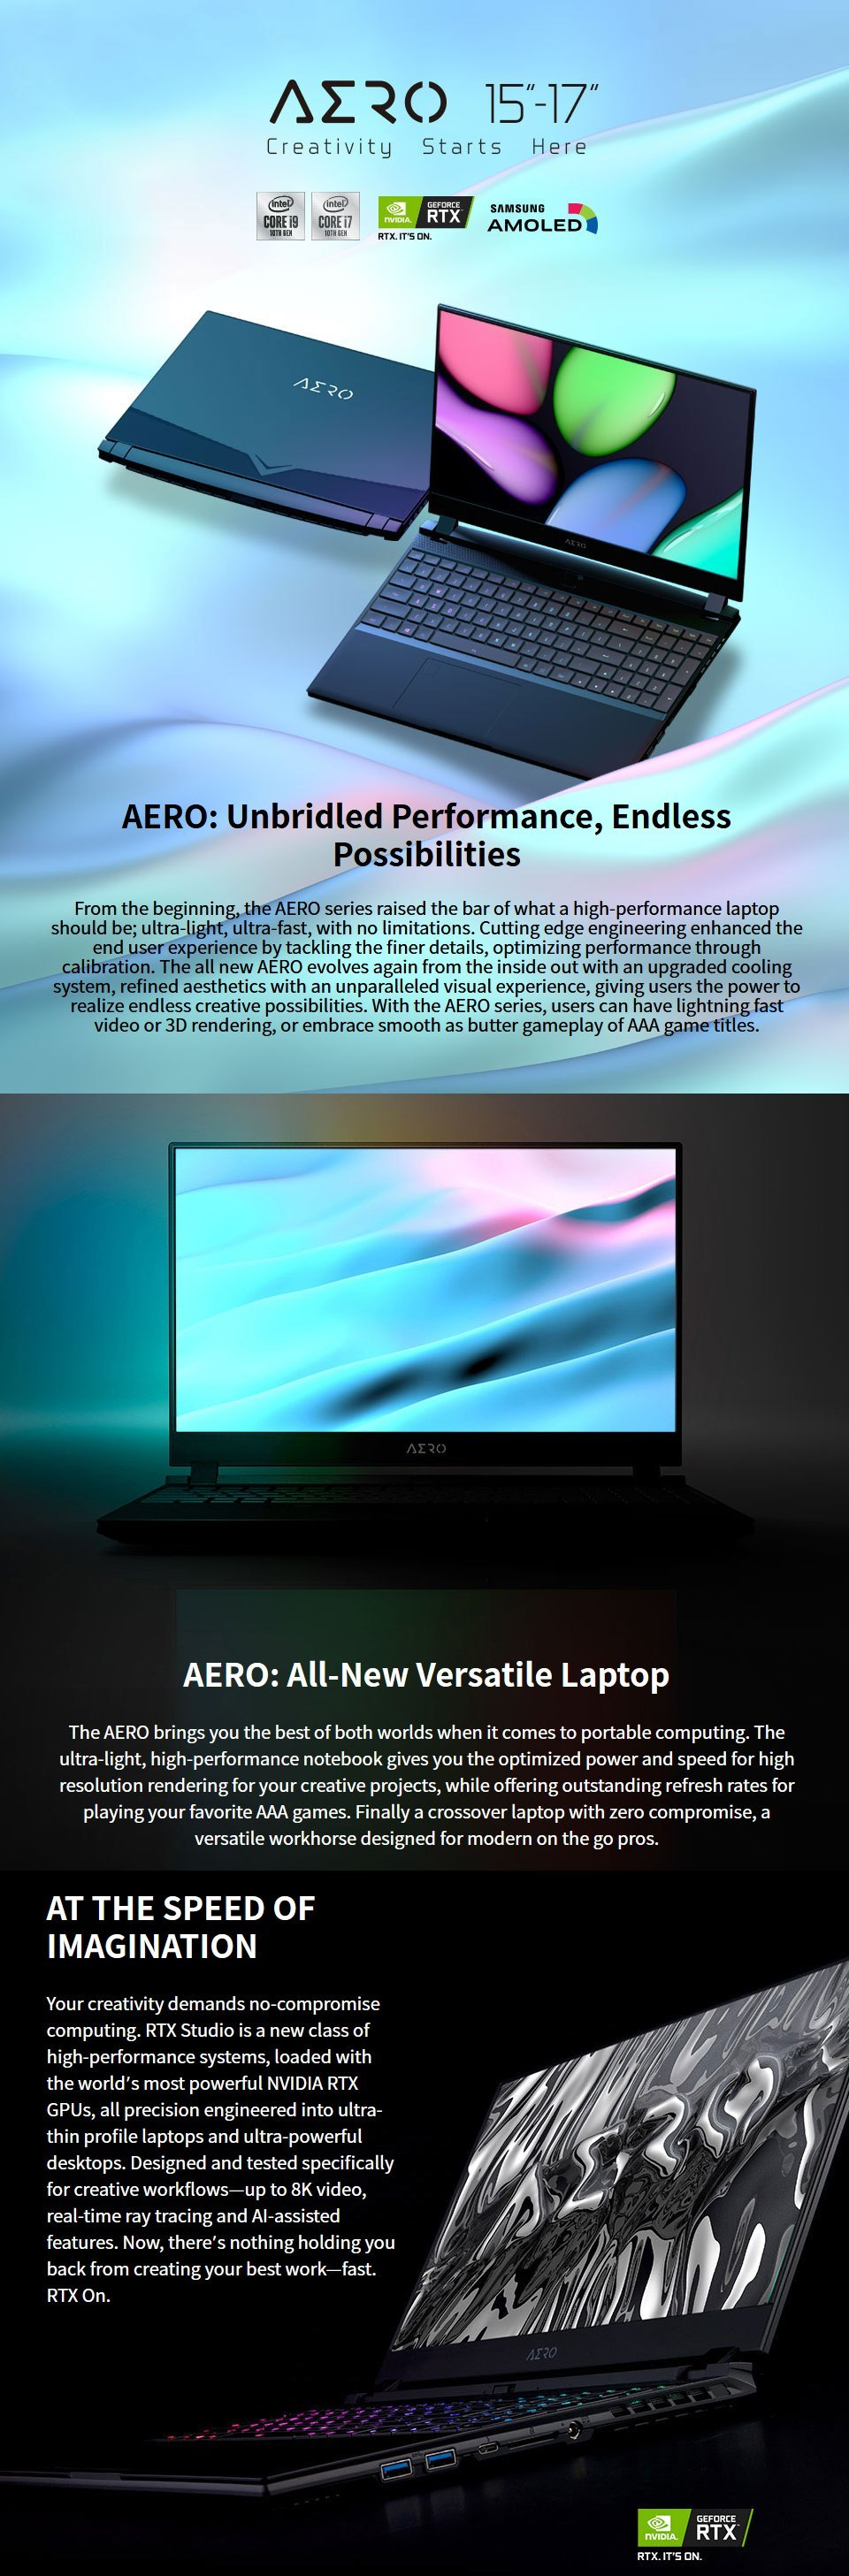 Gigabyte AERO 17 Core i7 RTX 2080 Super 17.3in UHD HDR Laptop features